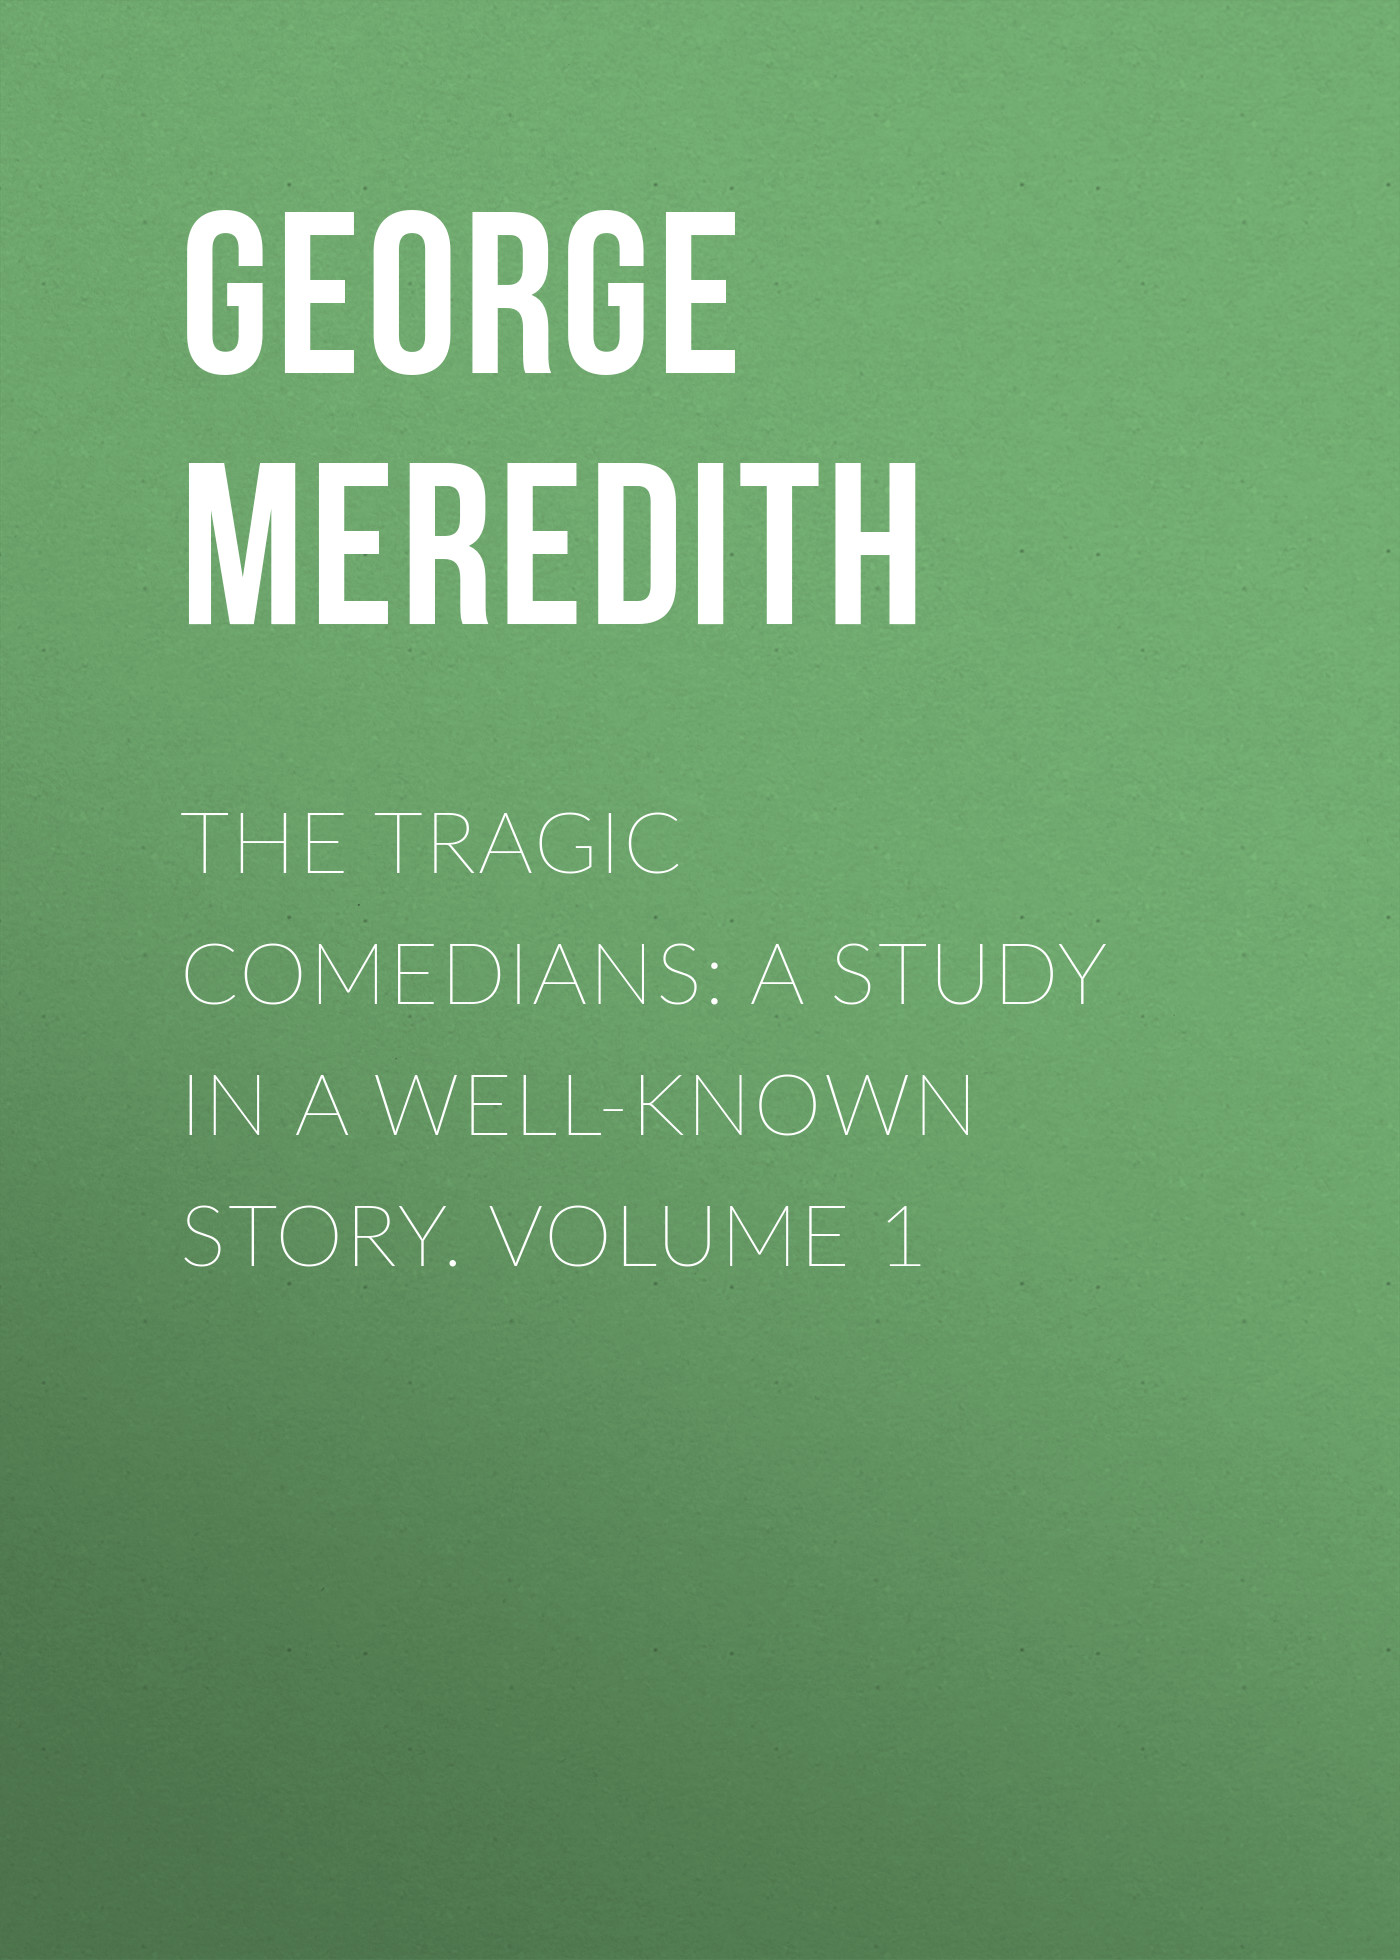 George Meredith The Tragic Comedians: A Study in a Well-known Story. Volume 1